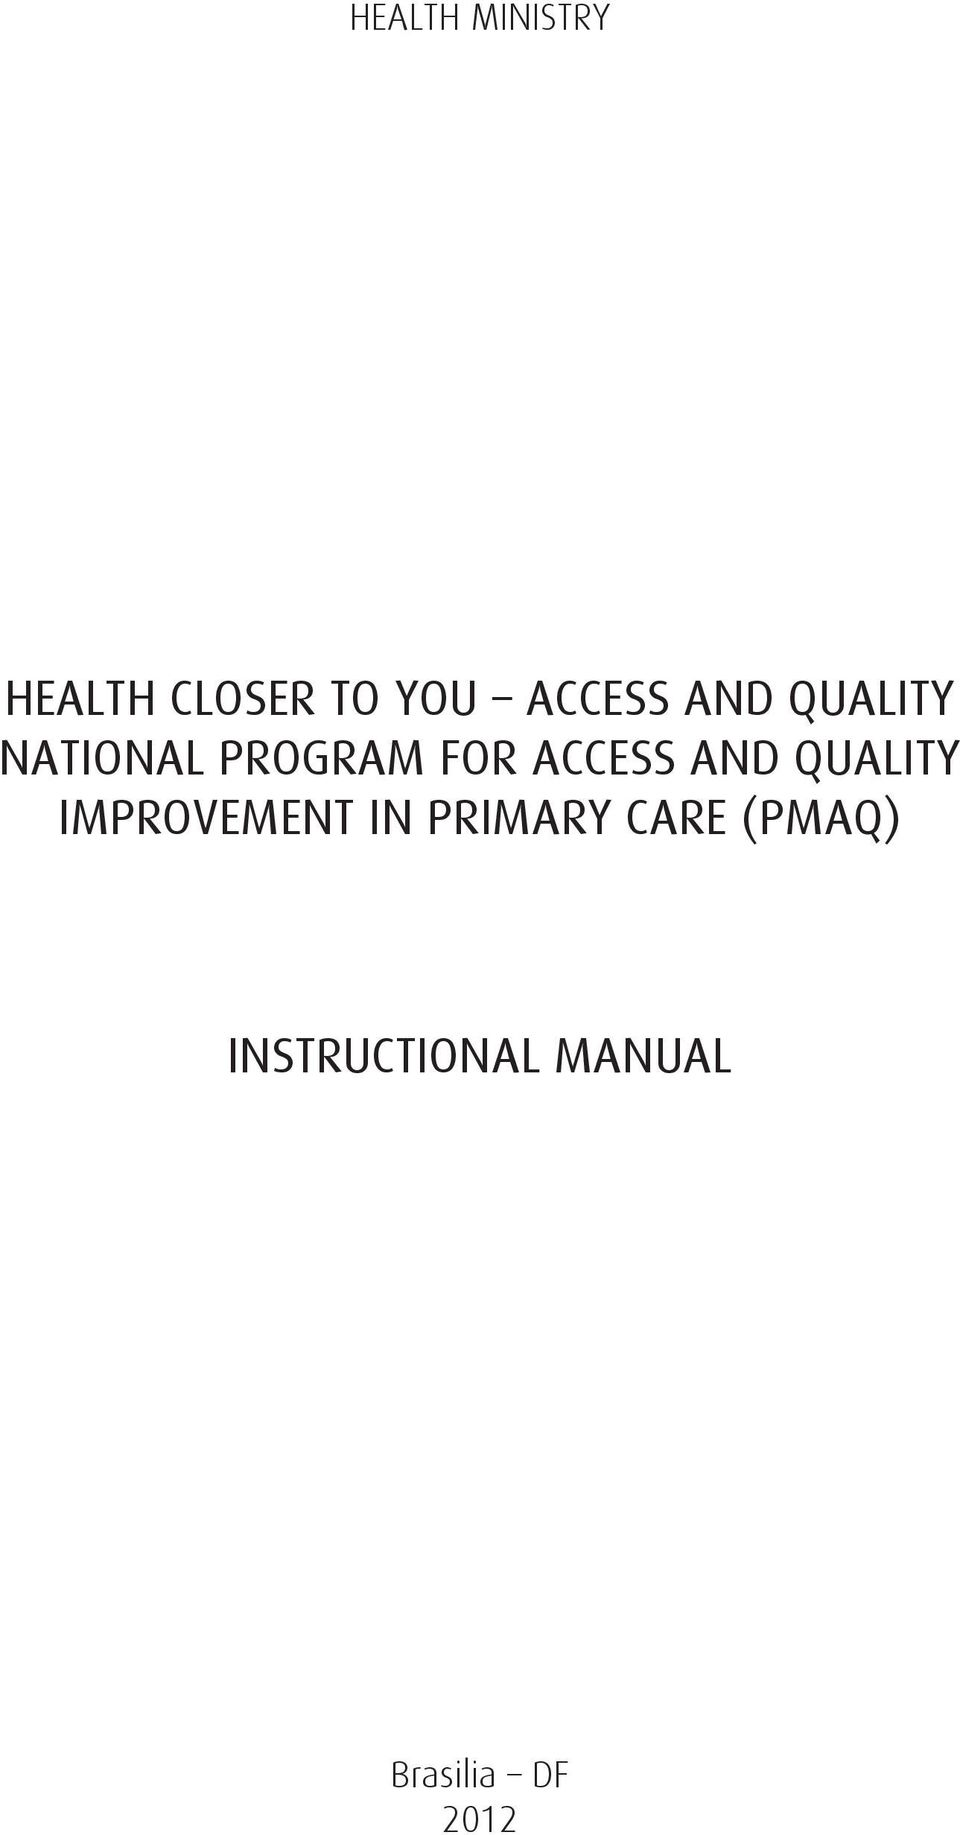 ACCESS AND QUALITY IMPROVEMENT IN PRIMARY